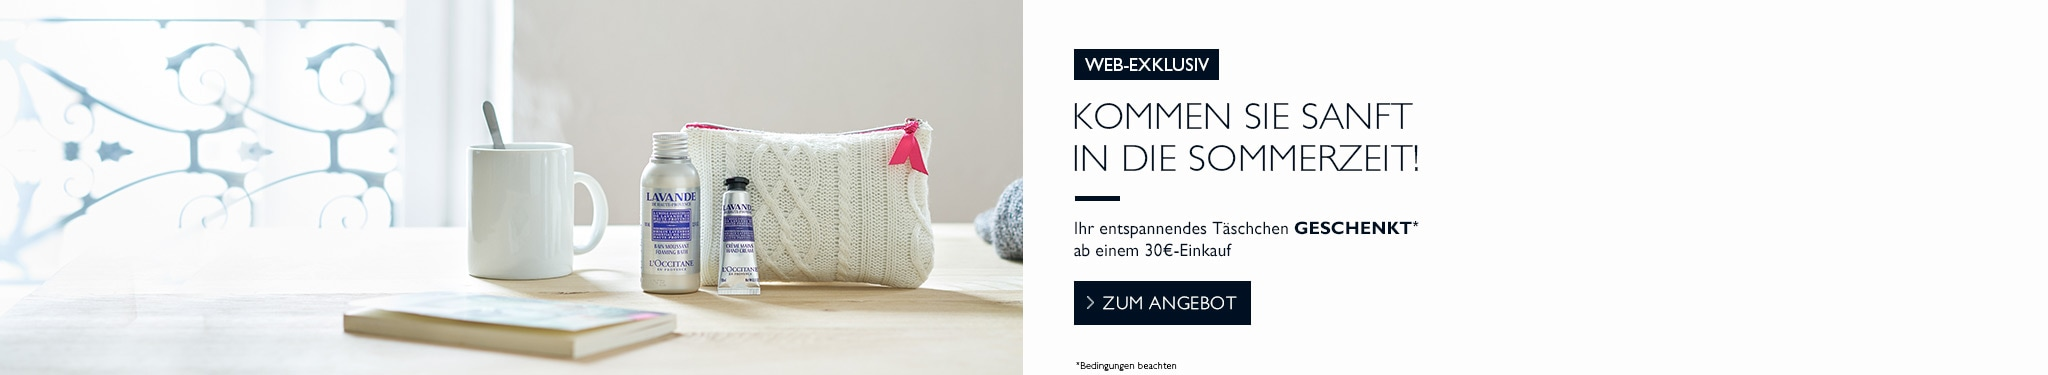 Entspannungs-Angebot